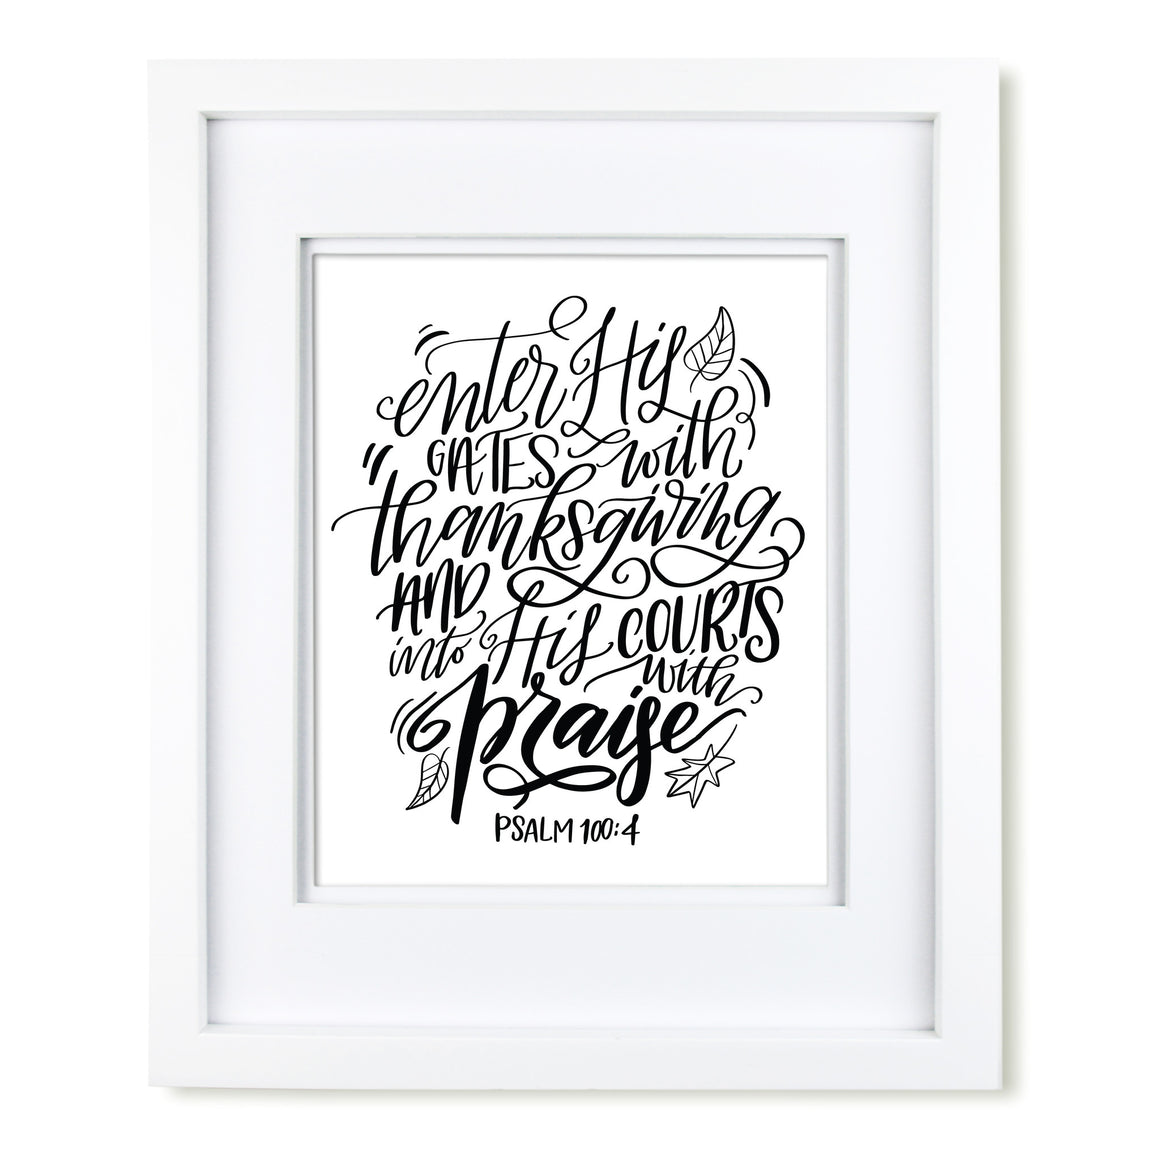 """Enter with Thanksgiving"" scripture art print - Black/White"